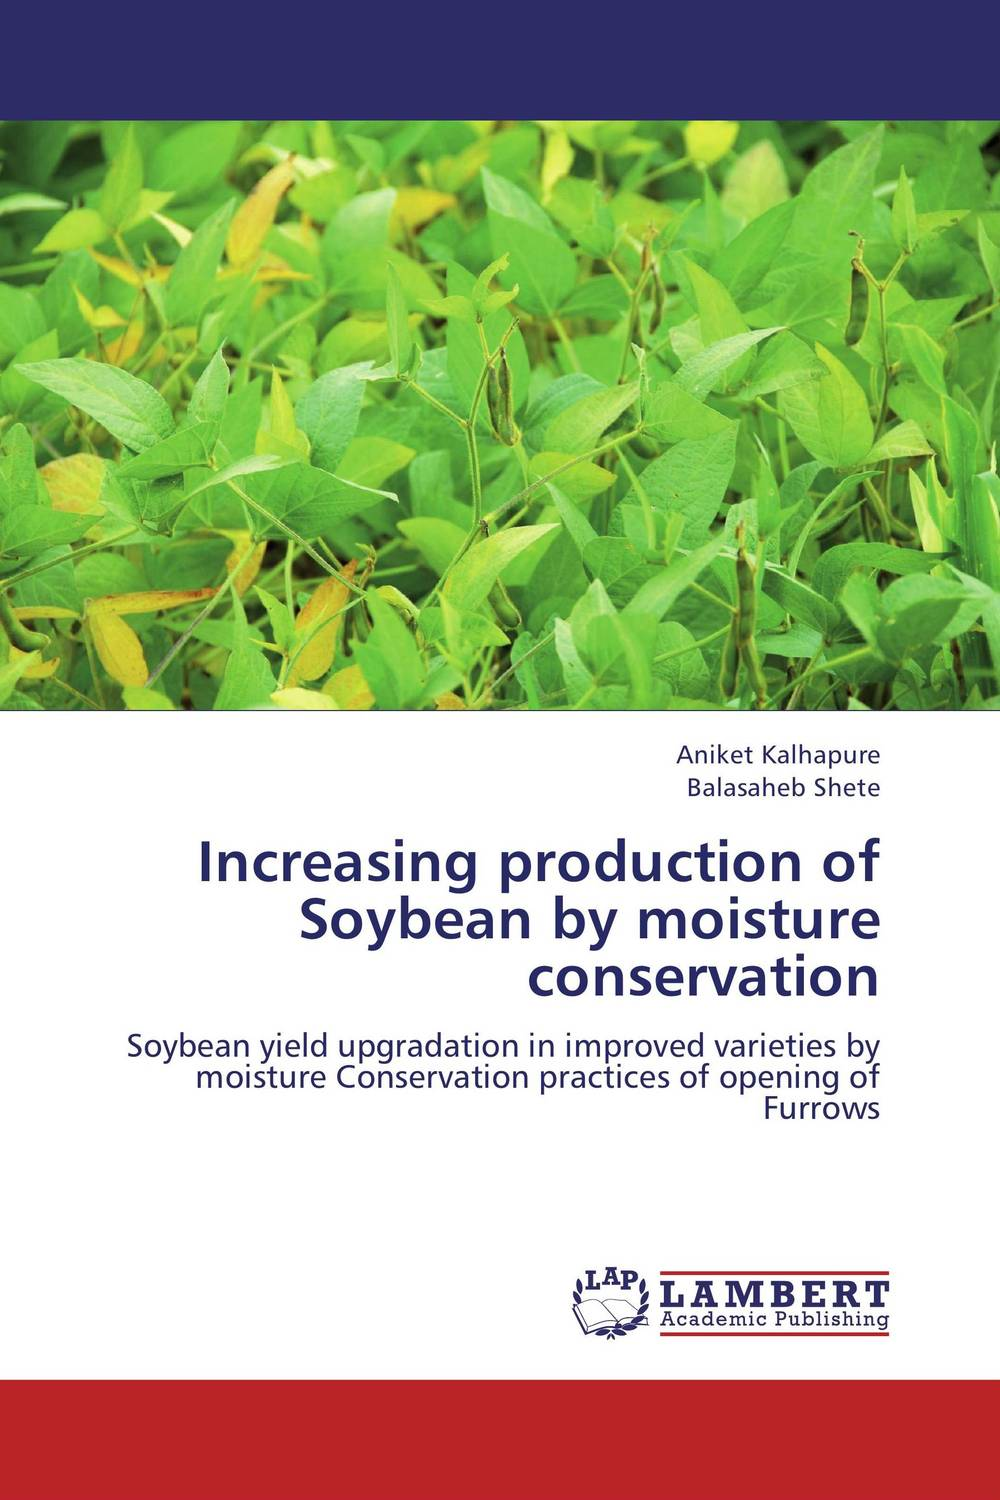 Increasing production of Soybean by moisture conservation adding value to the citrus pulp by enzyme biotechnology production